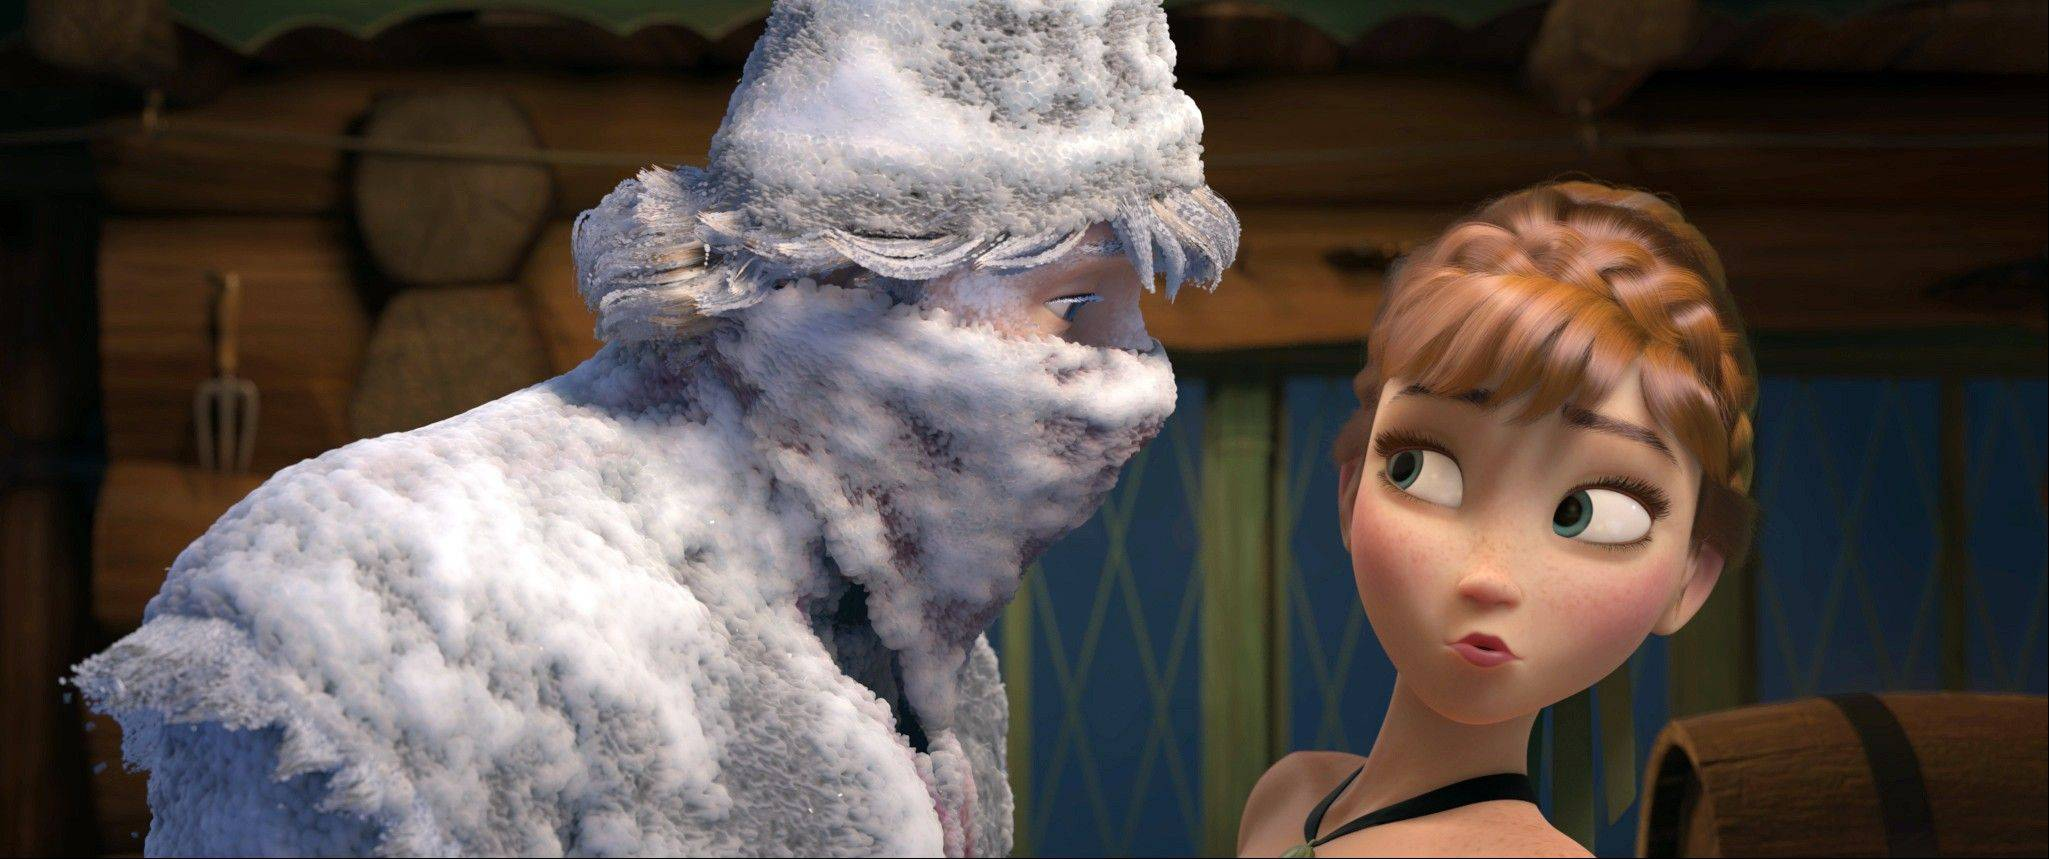 "This image released by Disney shows Kristoff, voiced by Jonathan Groff, left, and Anna, voiced by Kristen Bell, in a scene from the animated feature film, ""Frozen."" The animated film, which just launched a singalong version, landed at No. 2 after 11 weeks of release."